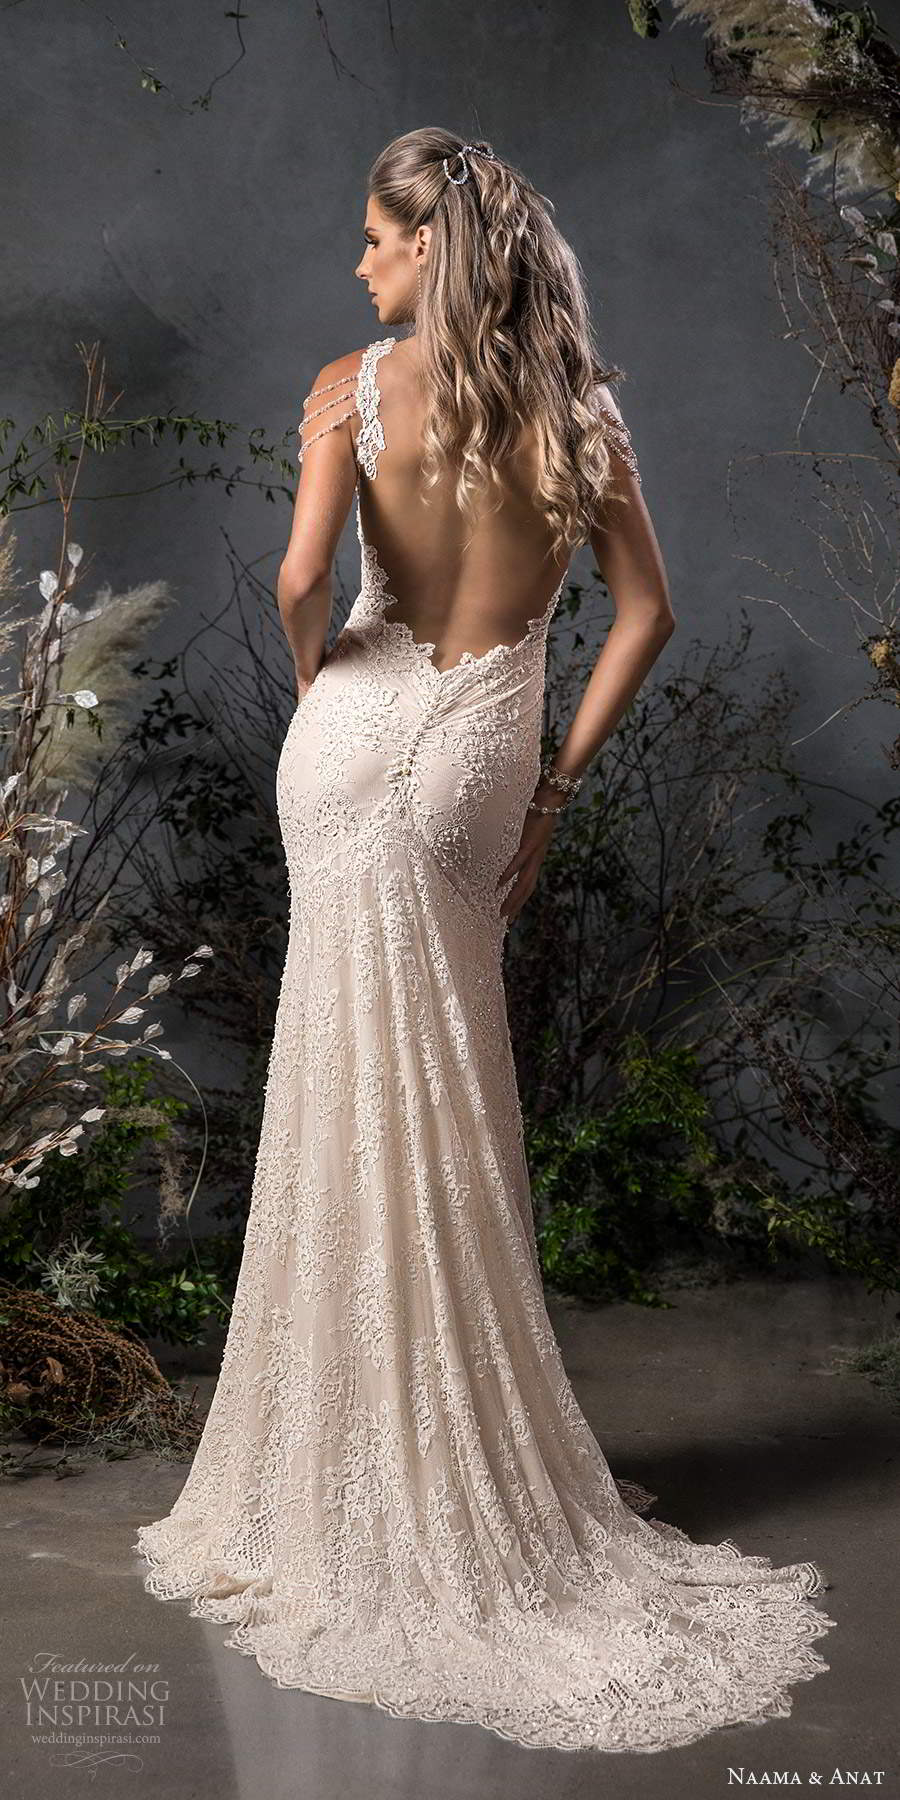 naama anat fall 2020 bridal cold shoulder straps sweetheart neckline fully embellished fit flare sheath wedding dress chapel train (2) bv